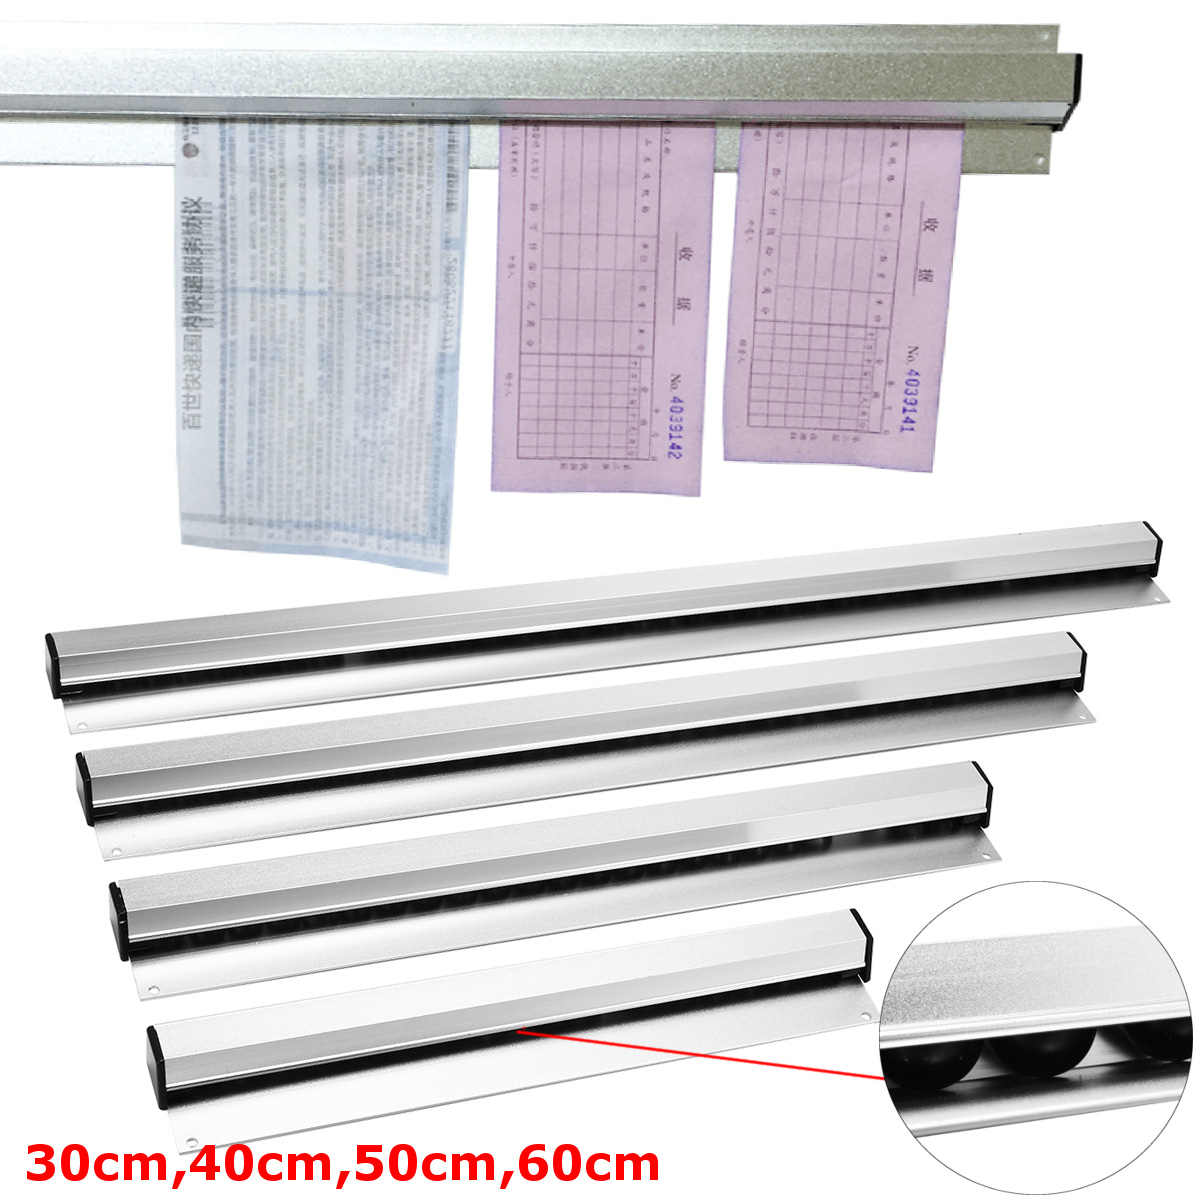 30cm 40cm 50cm 60cm Ticket Tab Bill Receipt Hanging Rack Bar Kitchen Order Document Holder Kitchen Tool Ticket Organizer